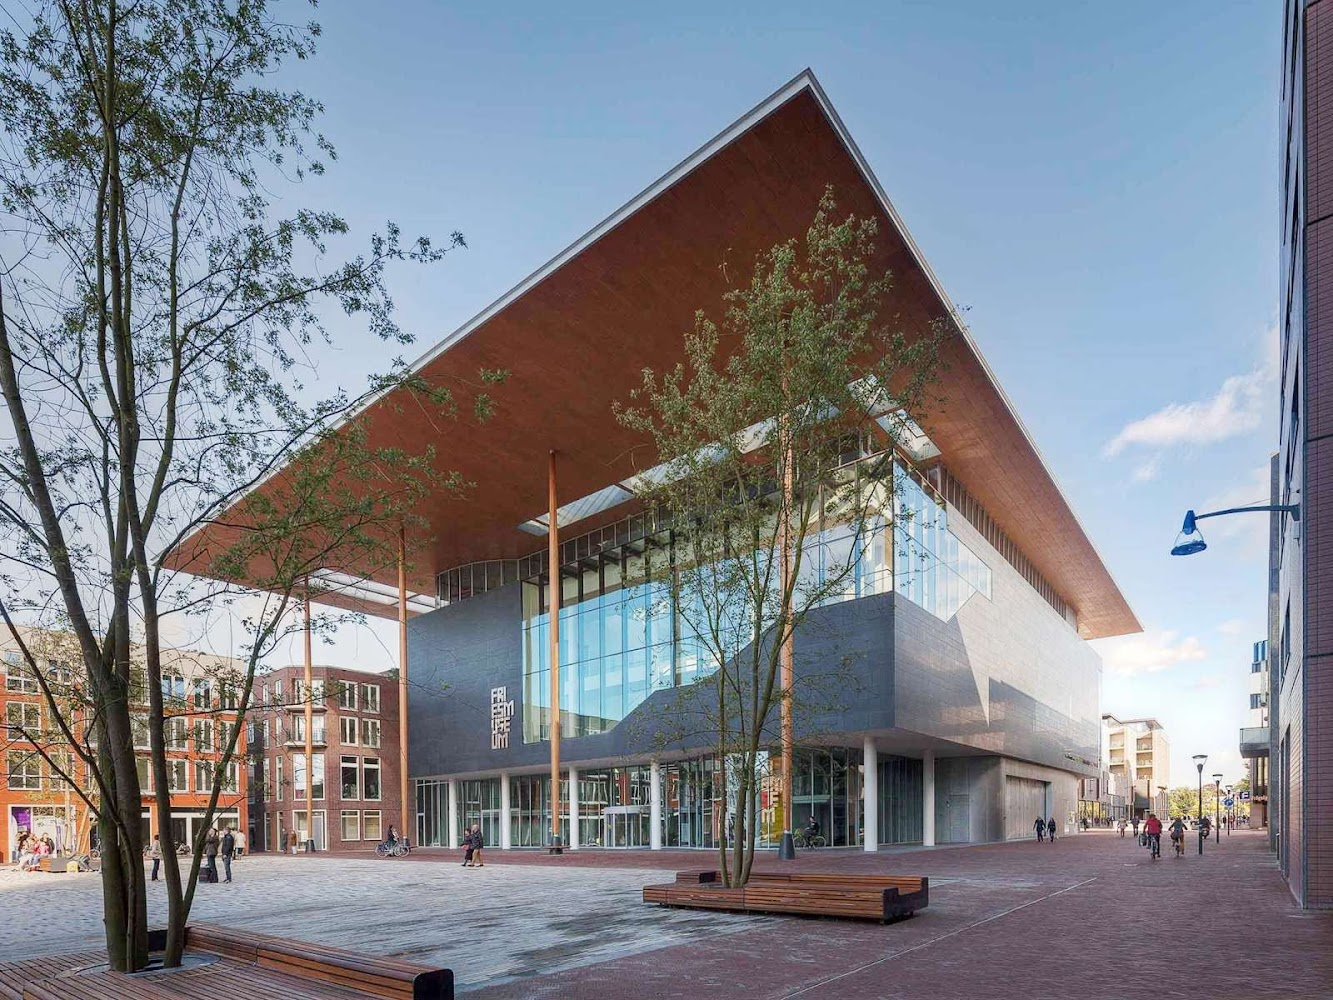 Leeuwarden, Paesi Bassi: Fries Museum by Bierman Henket Architecten